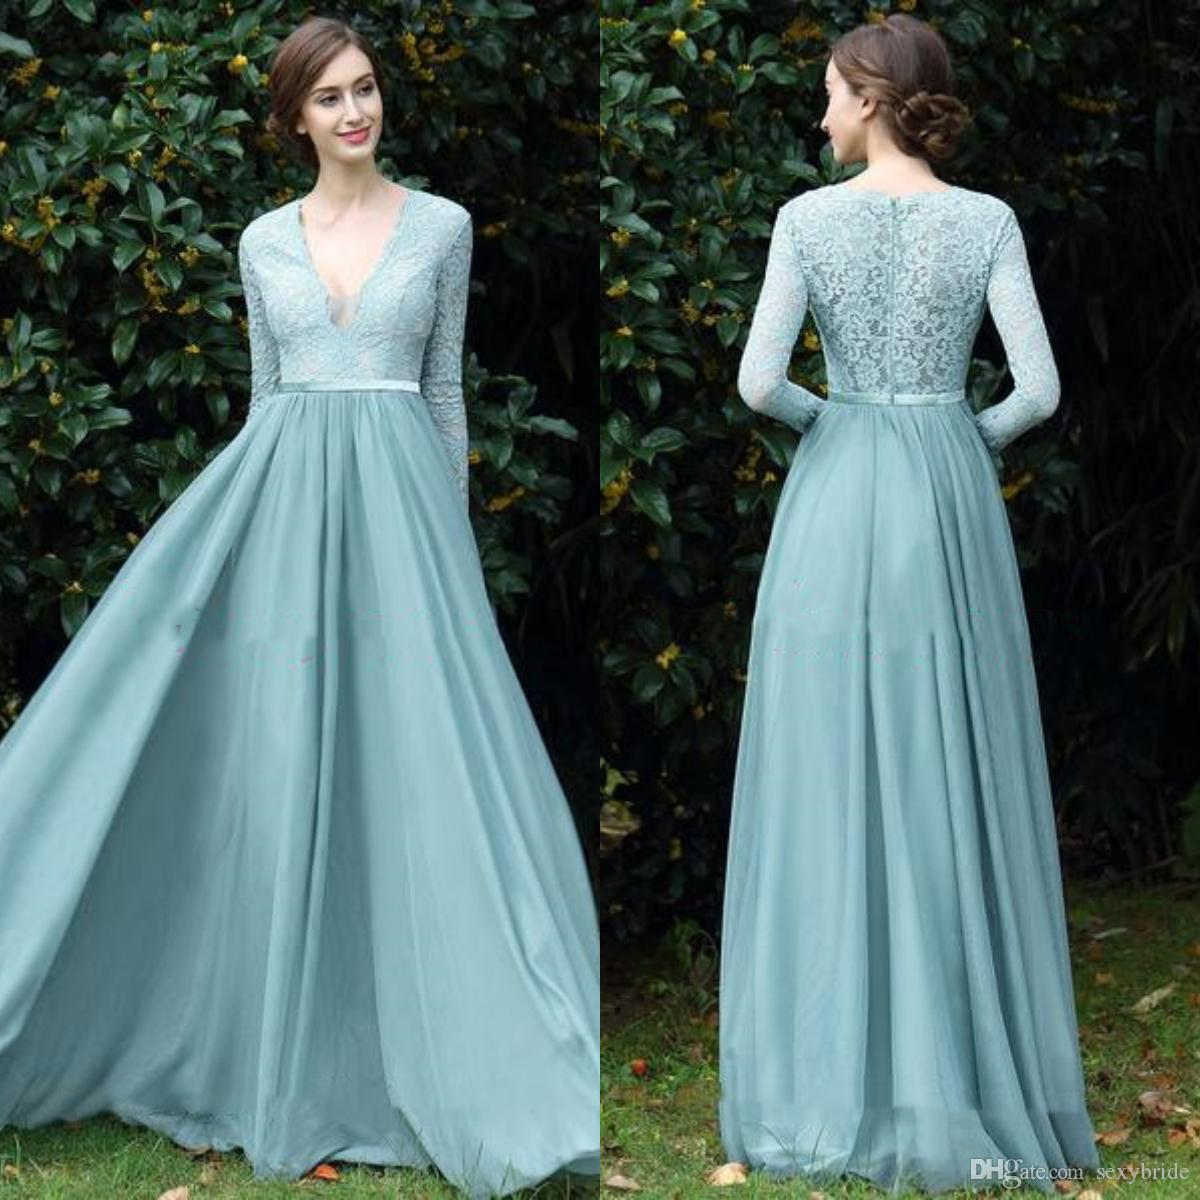 804ce519cd3 Elegant A Line Chiffon Top Lace Evening Formal Dresses 2018 V Neck Floor  Length Long Sleeve Evening Dresses Women Prom Dress Grecian Style Evening  Dresses ...